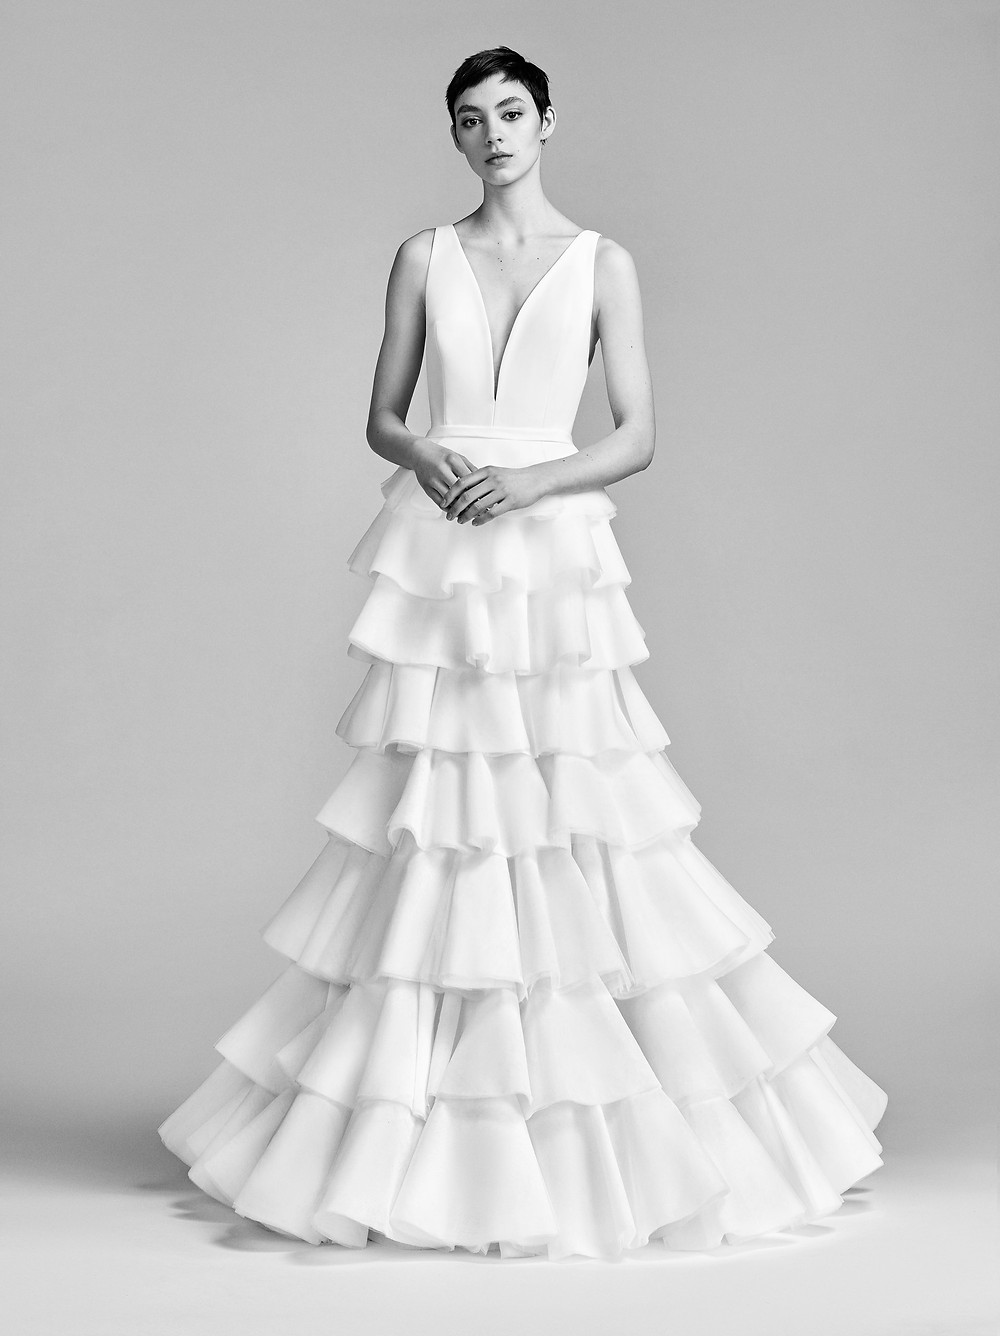 A Viktor & Rolf A-line wedding dress with a layered ruffle skirt and straps